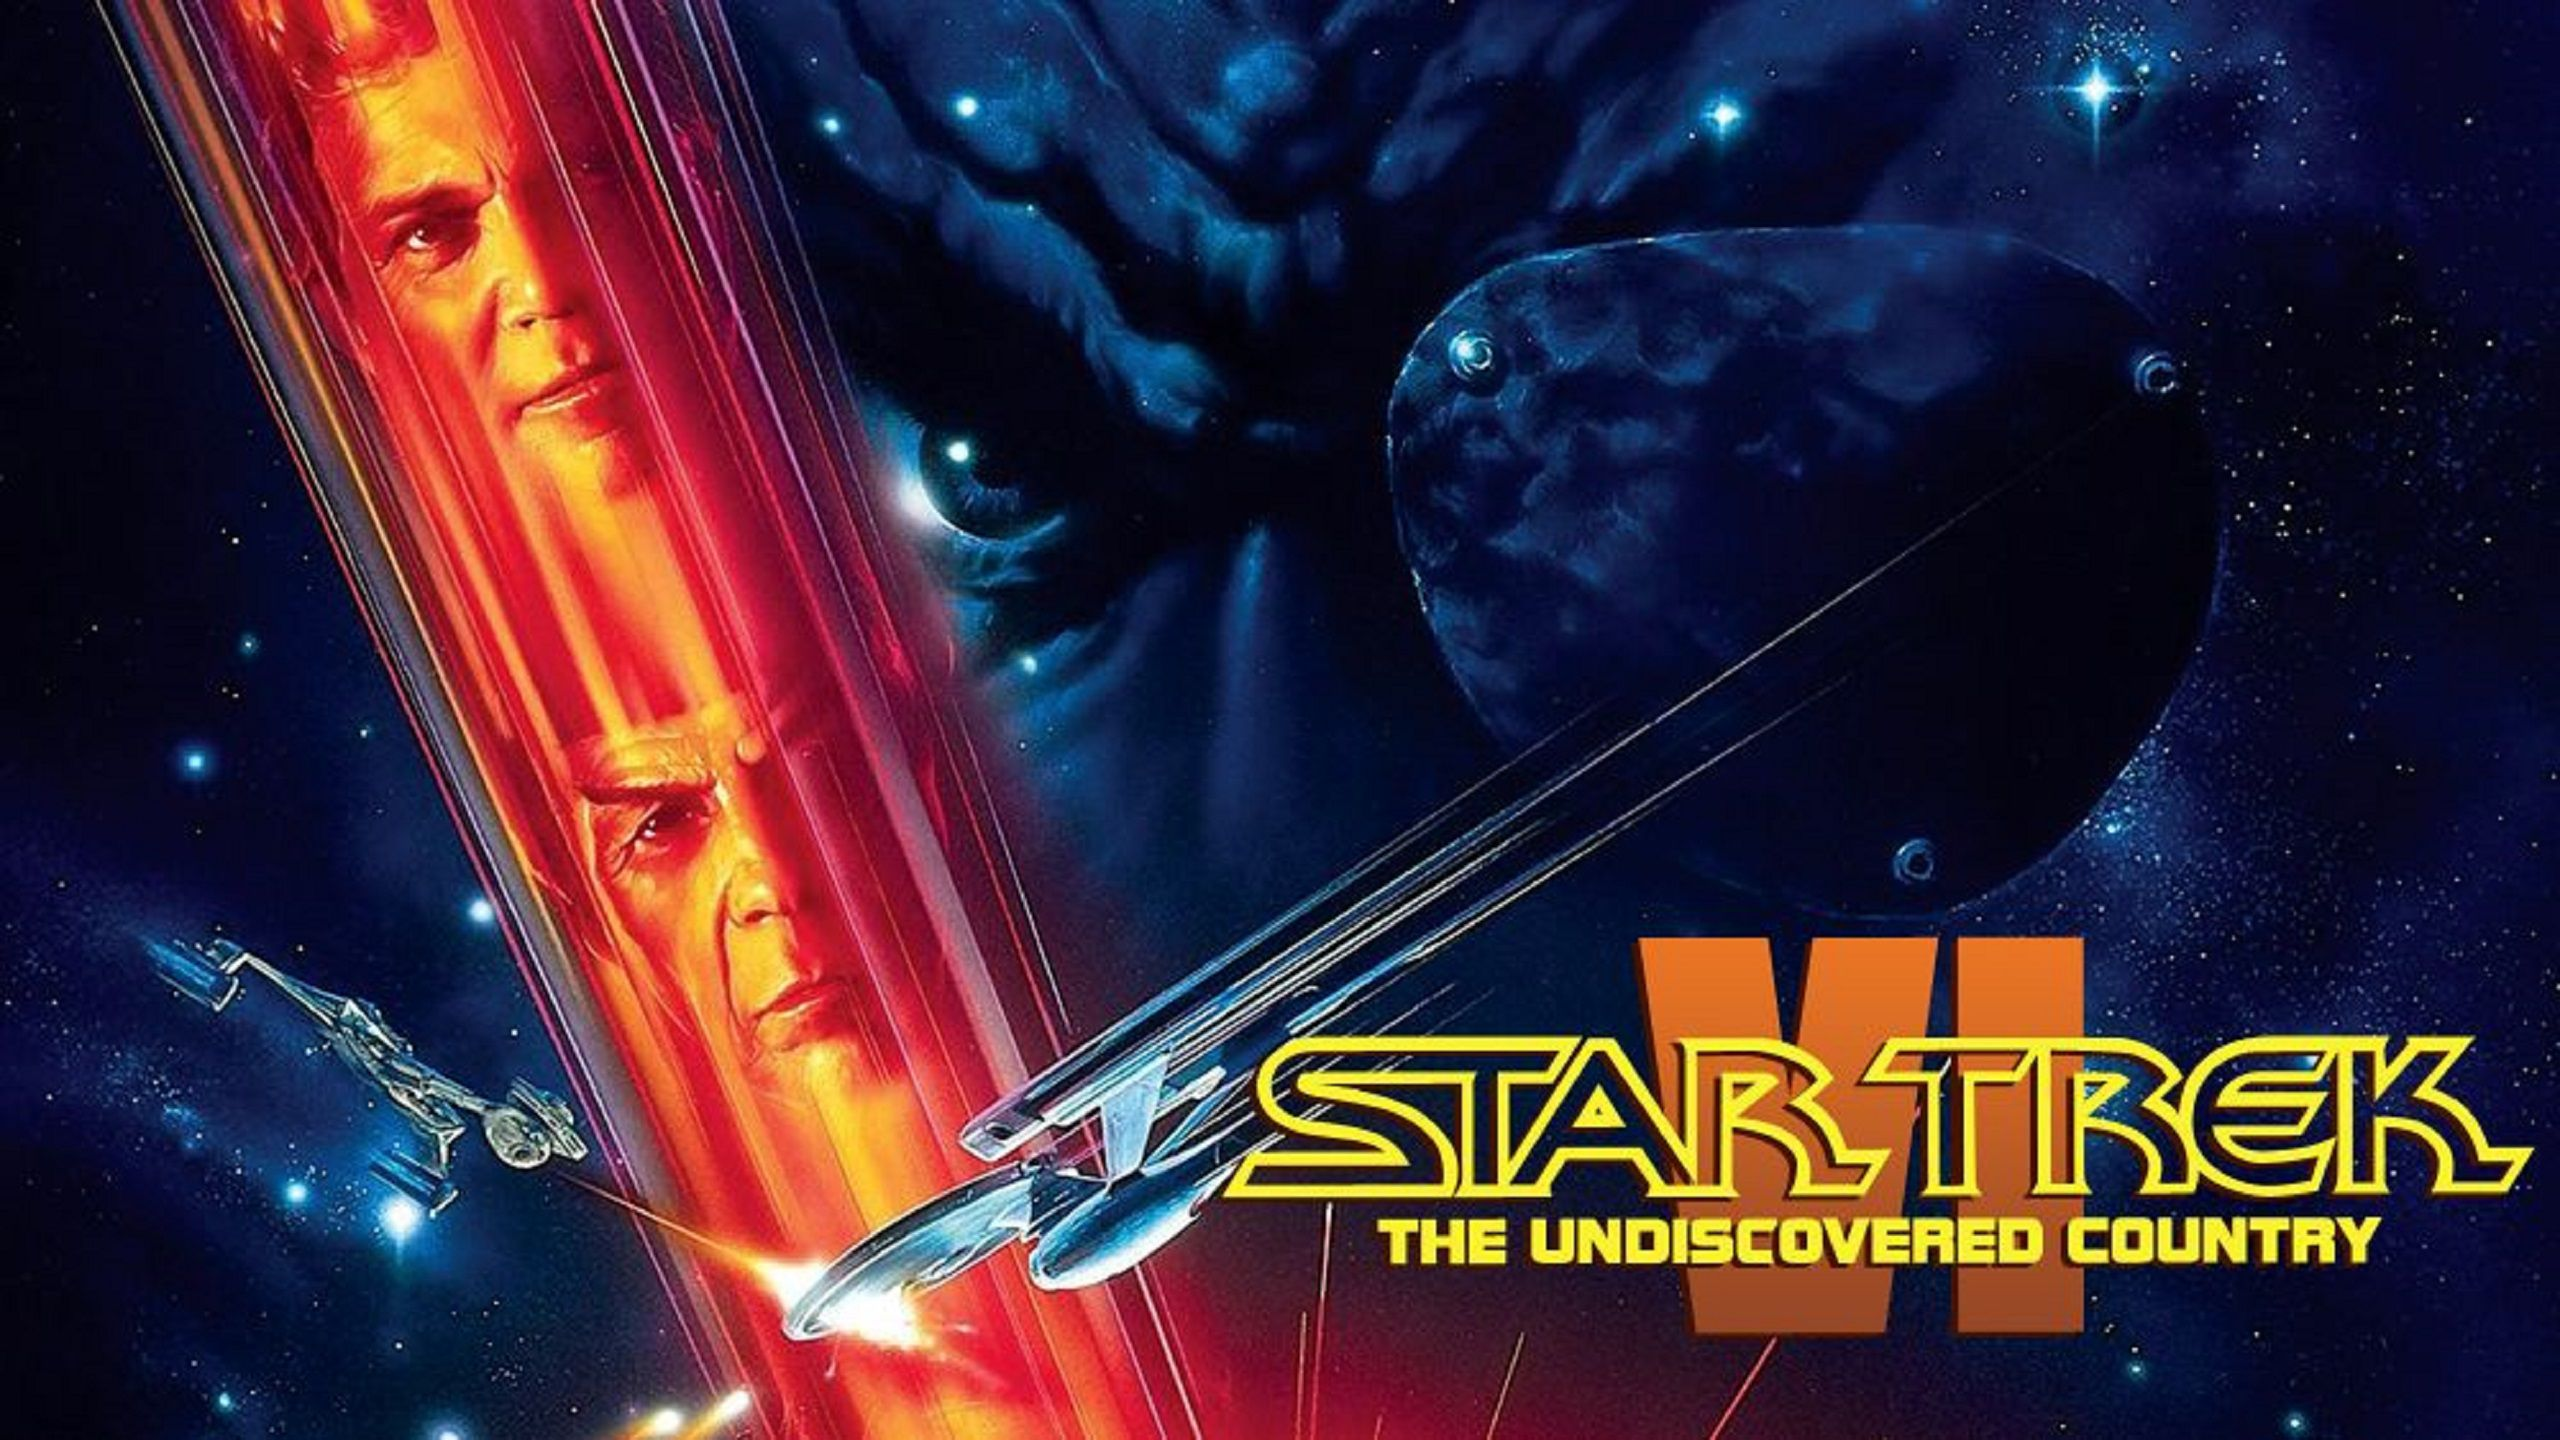 Star Trek 6 - Rotta verso l'Ignoto - Undiscovered Country  banner